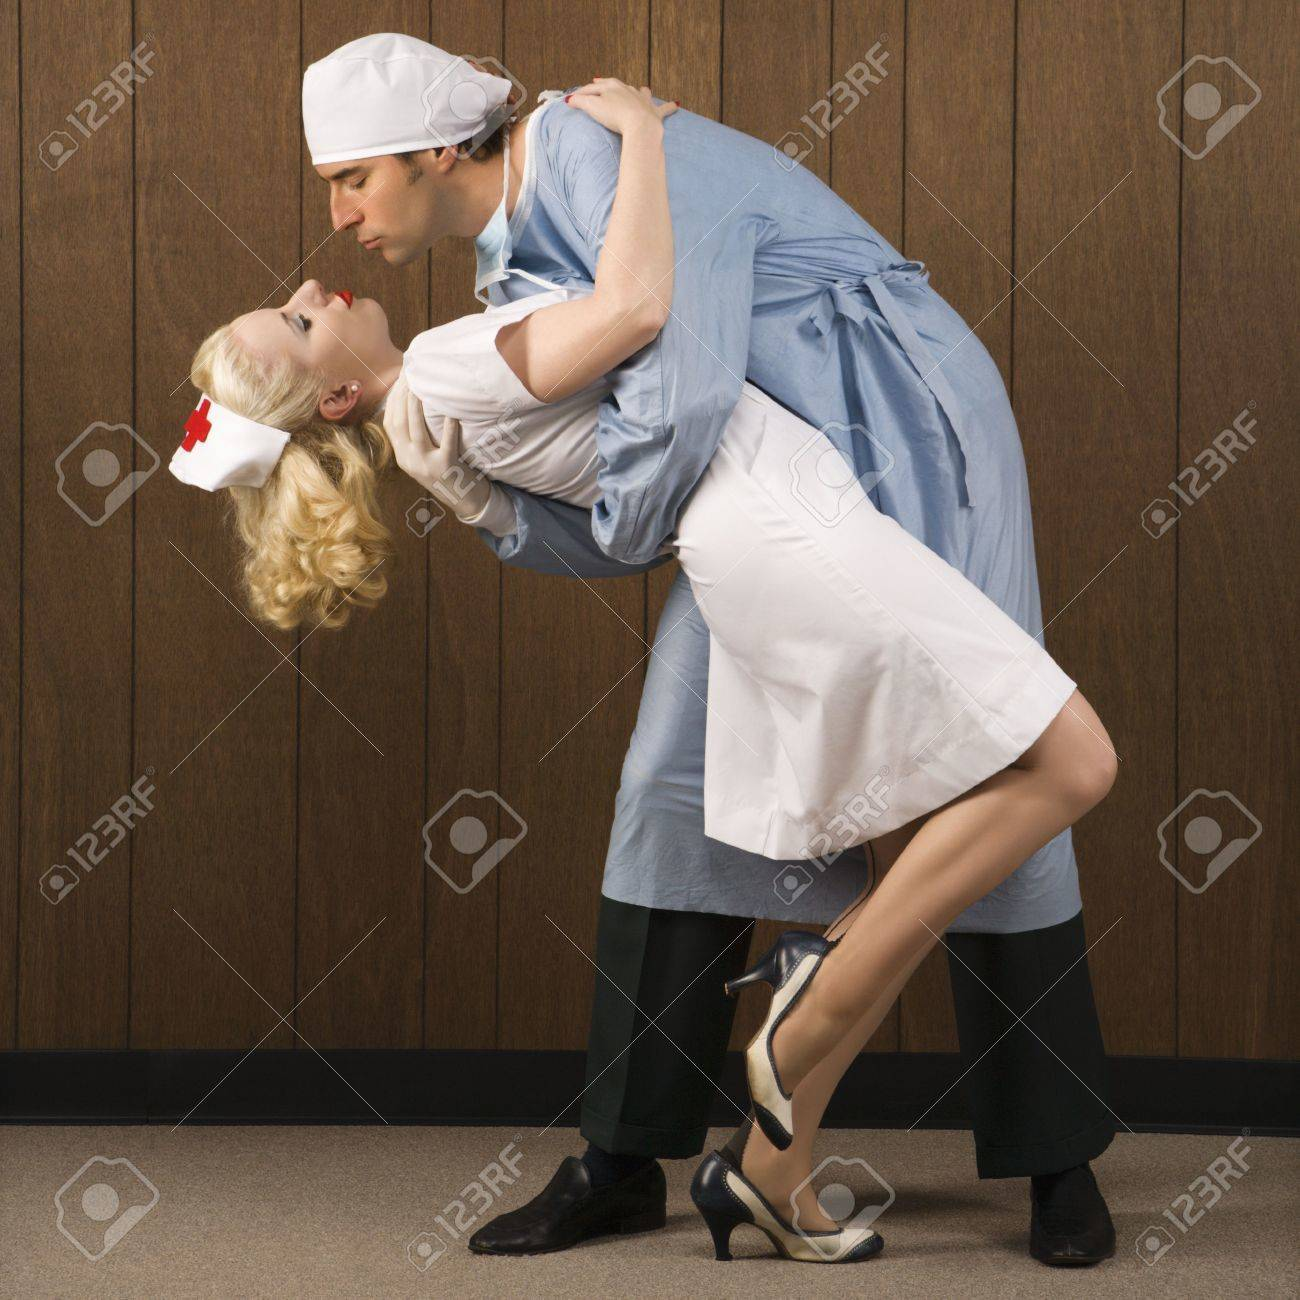 Mid-adult Caucasian male surgeon bending female nurse over backwards for passionate embrace. Stock Photo - 2029321